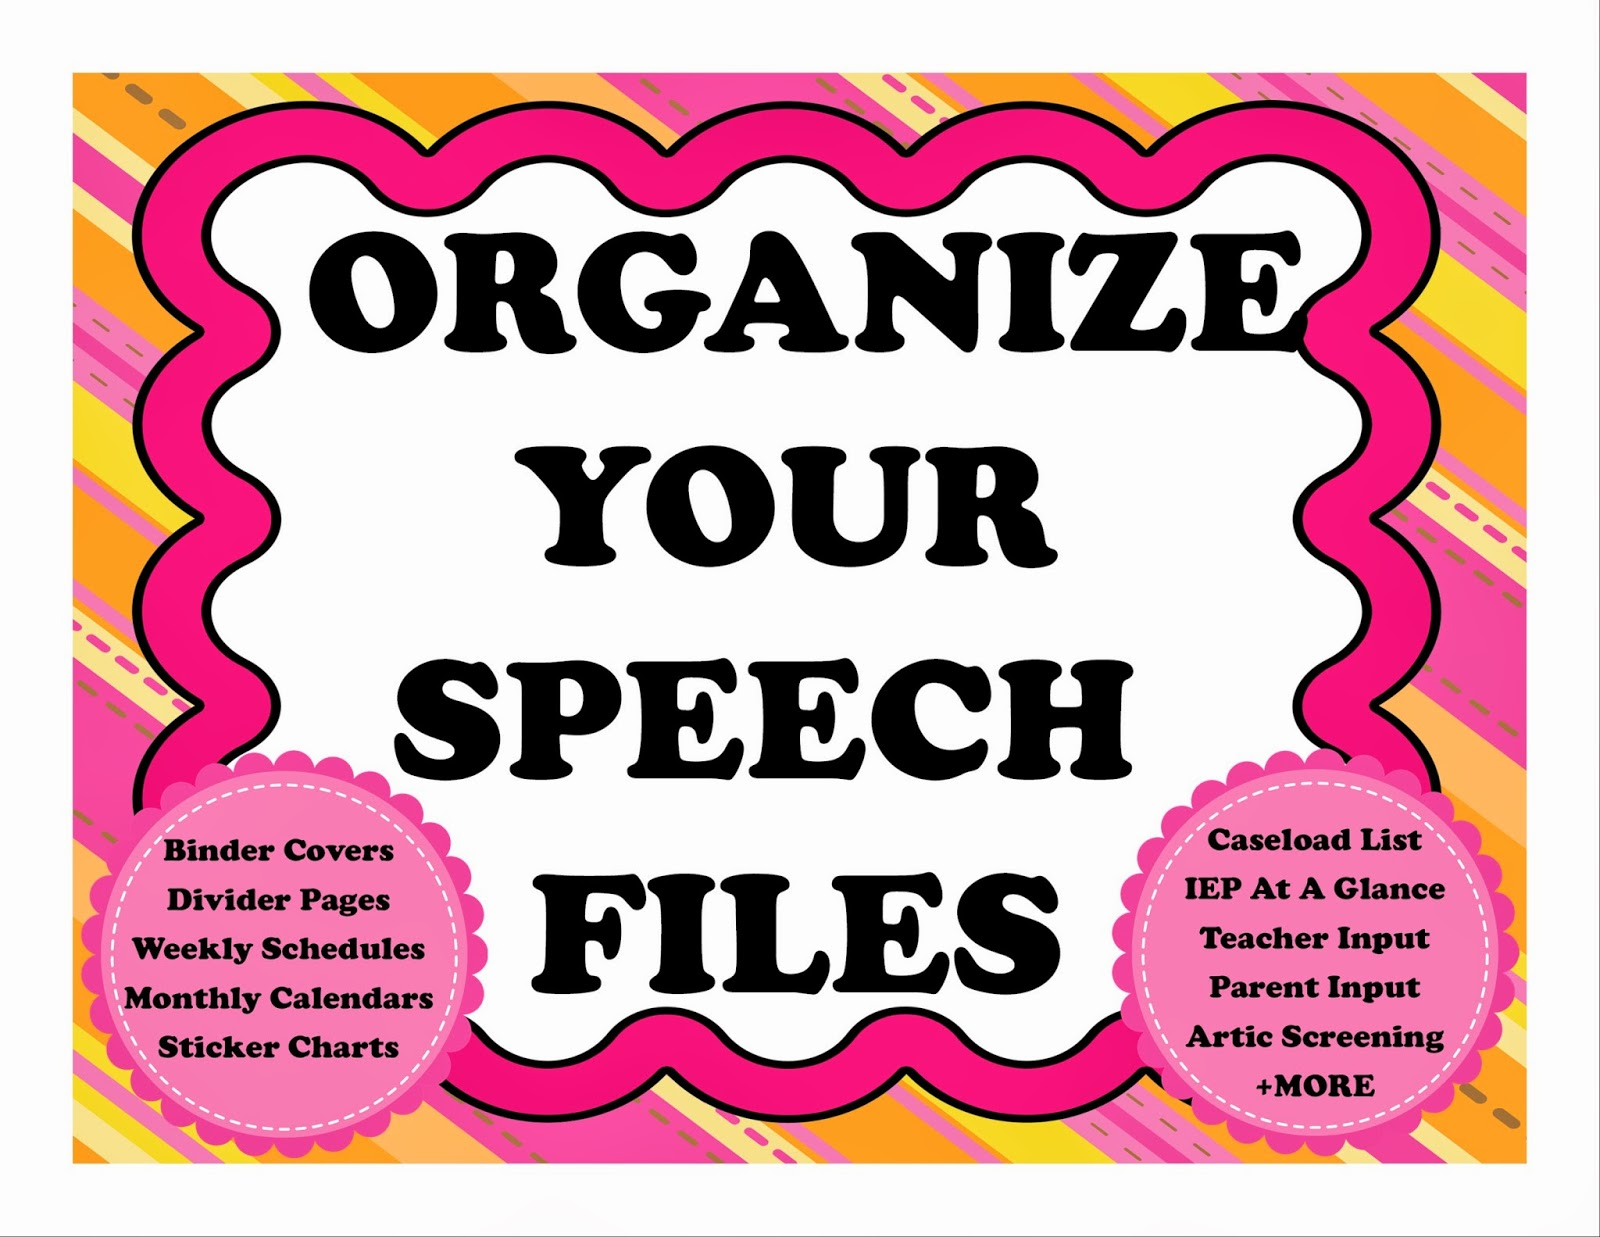 https://www.teacherspayteachers.com/Product/Organize-Your-Speech-Files-1676189